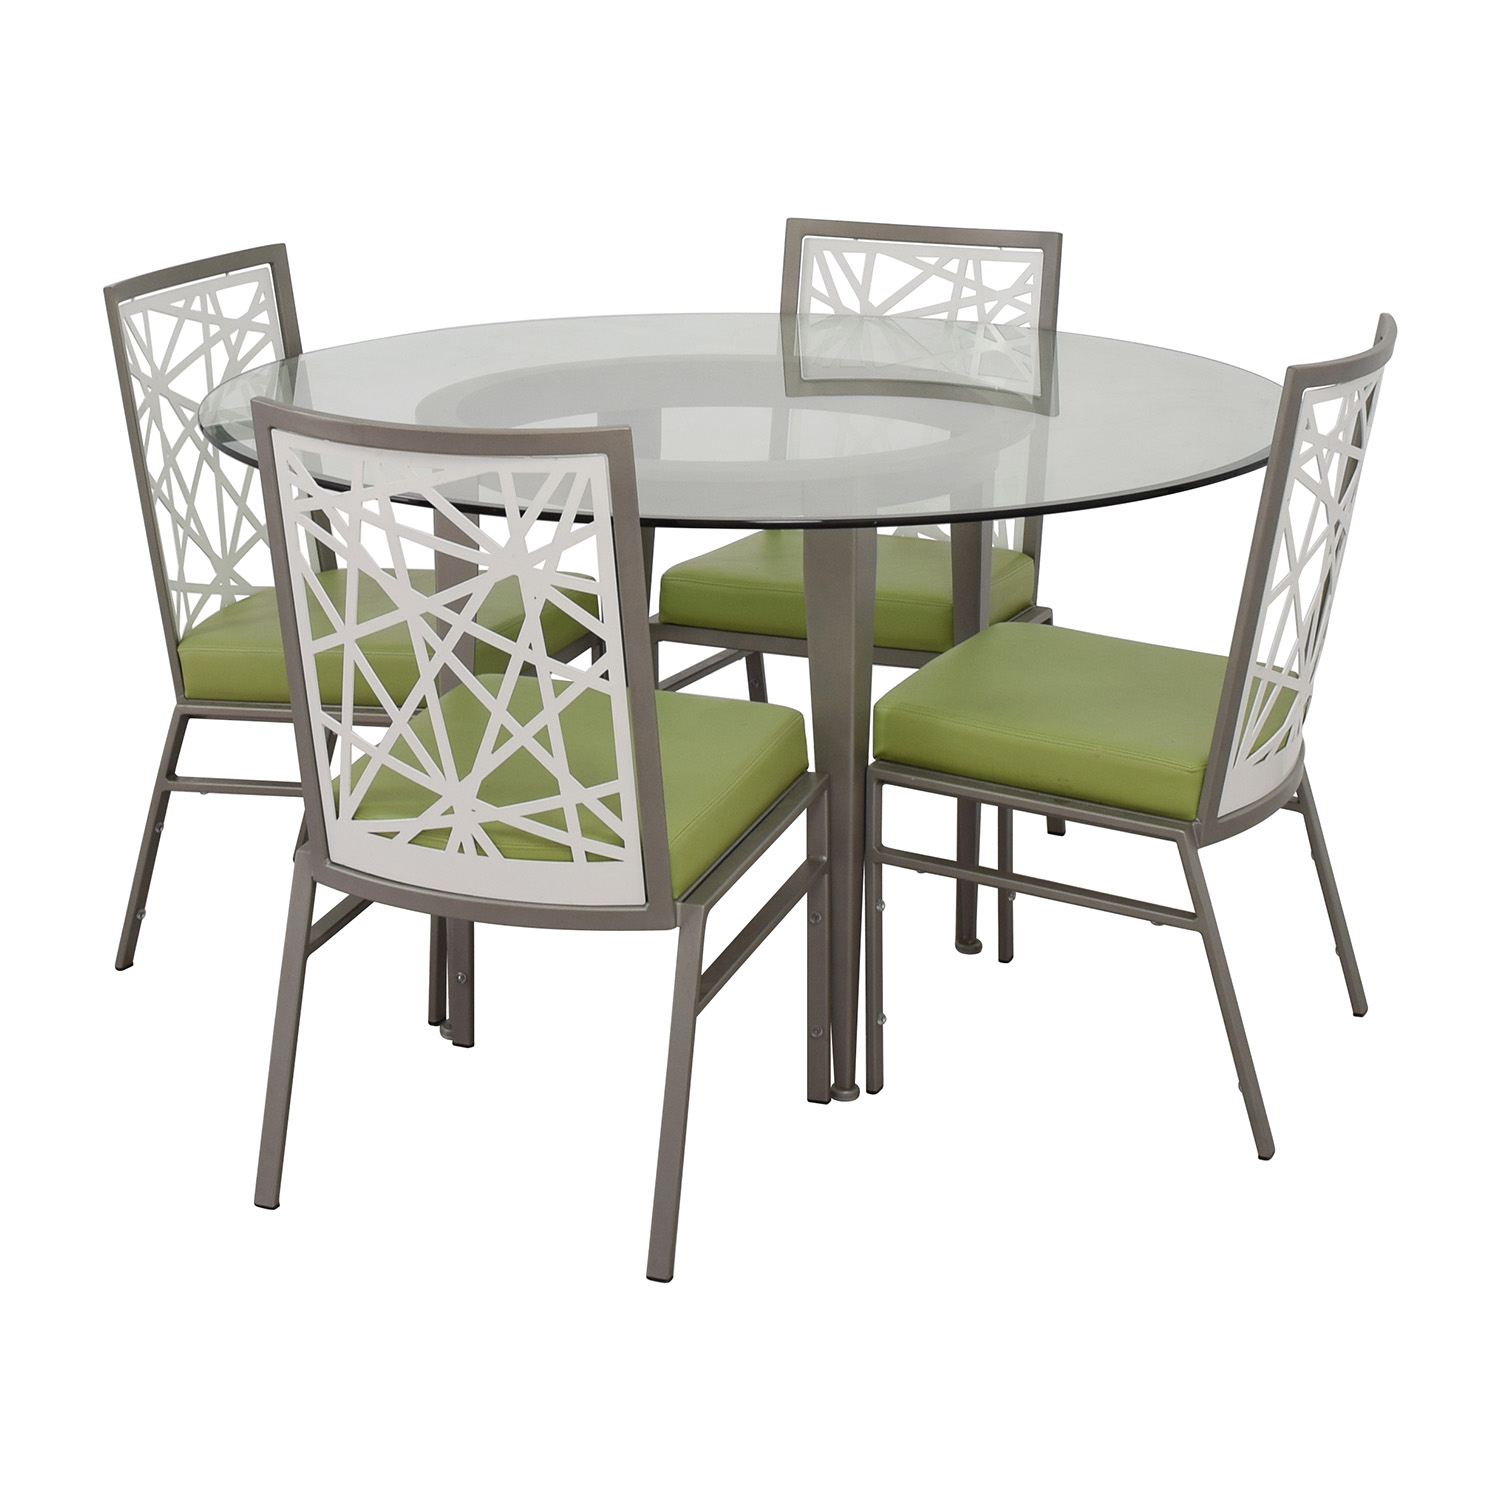 modern green dining chairs anti gravity chair tray 90 off bif furniture silver and